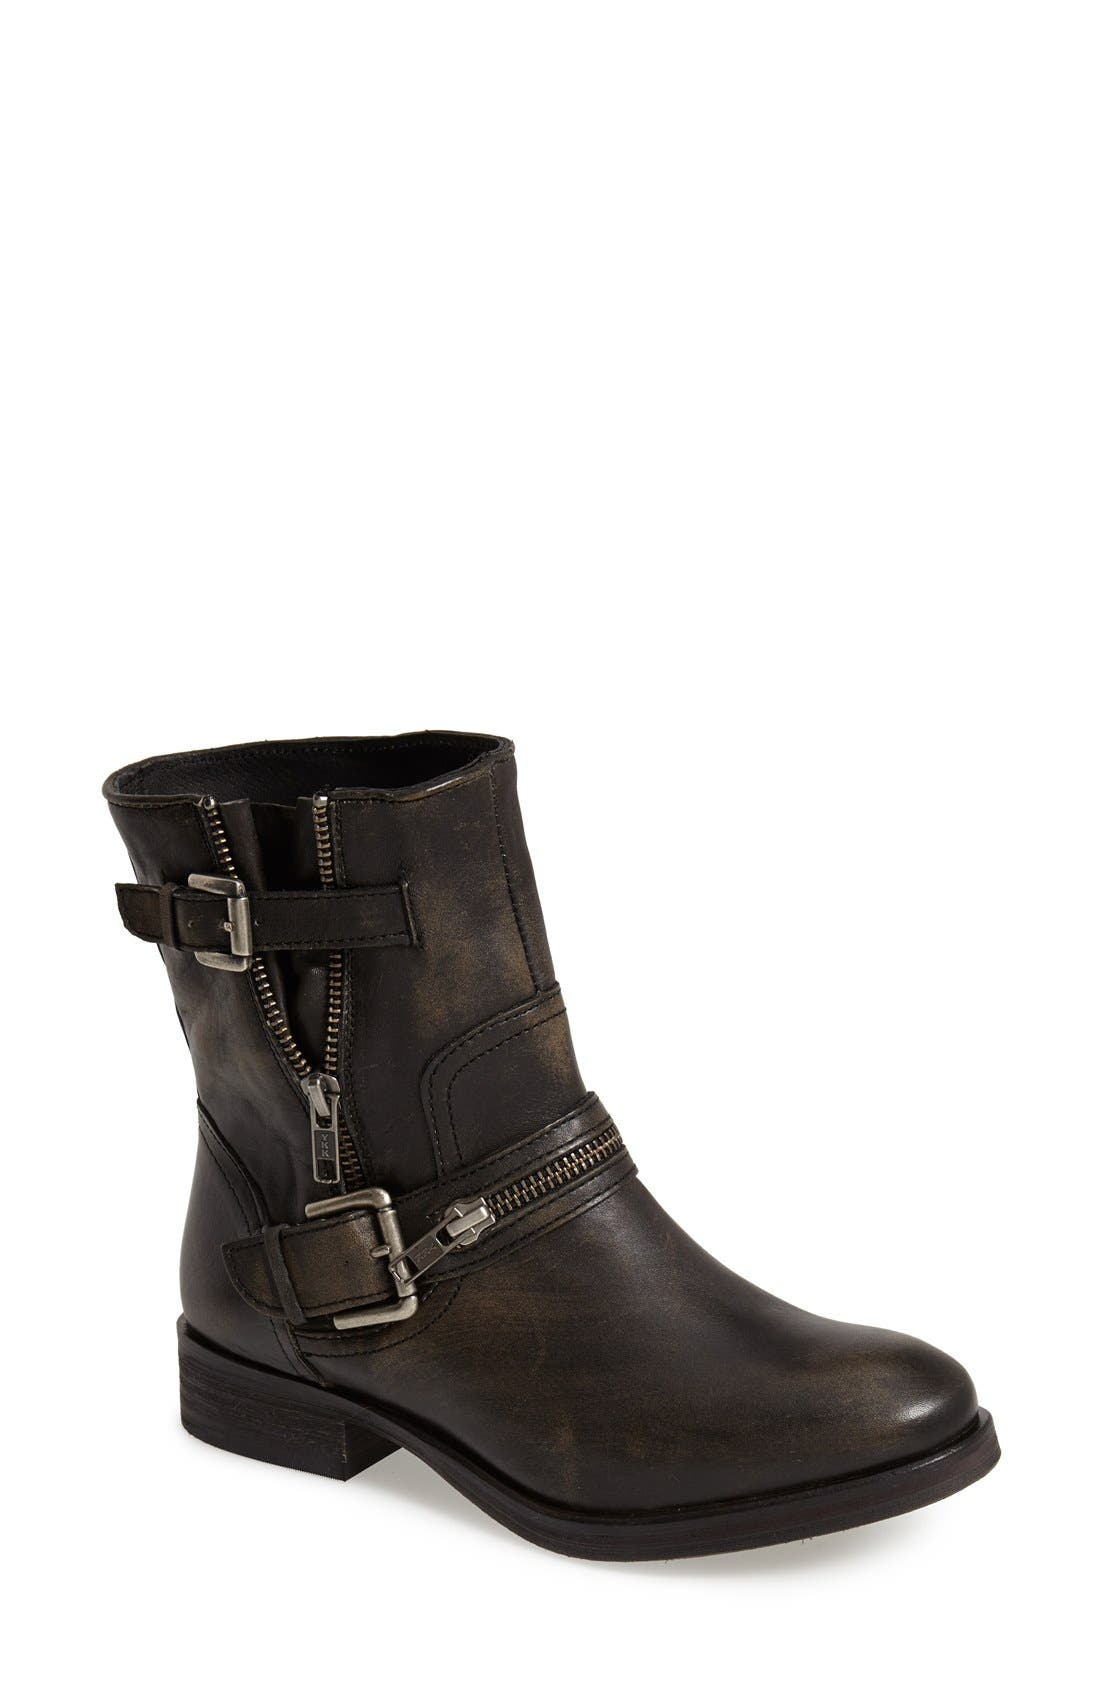 Alternate Image 1 Selected - Hinge 'Compadre' Leather Moto Boot (Women)